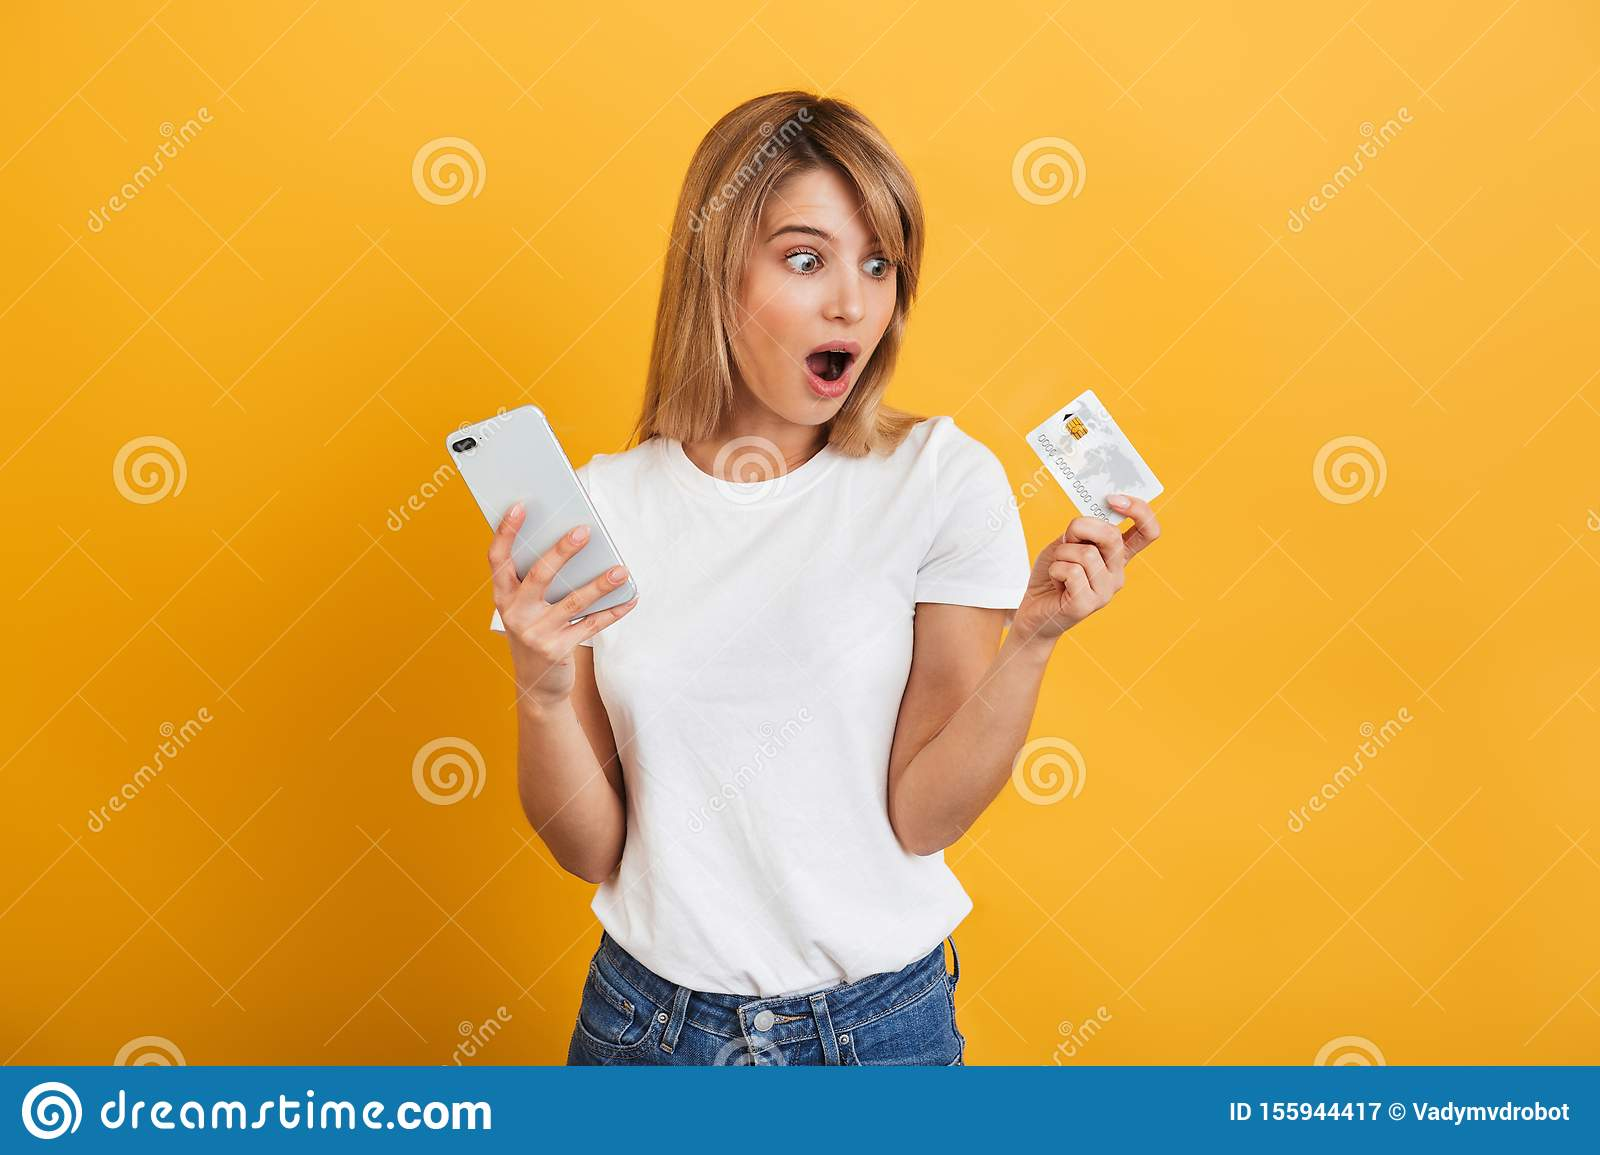 Shocked surprised young blonde woman posing isolated over yellow wall background dressed in white casual t-shirt using mobile